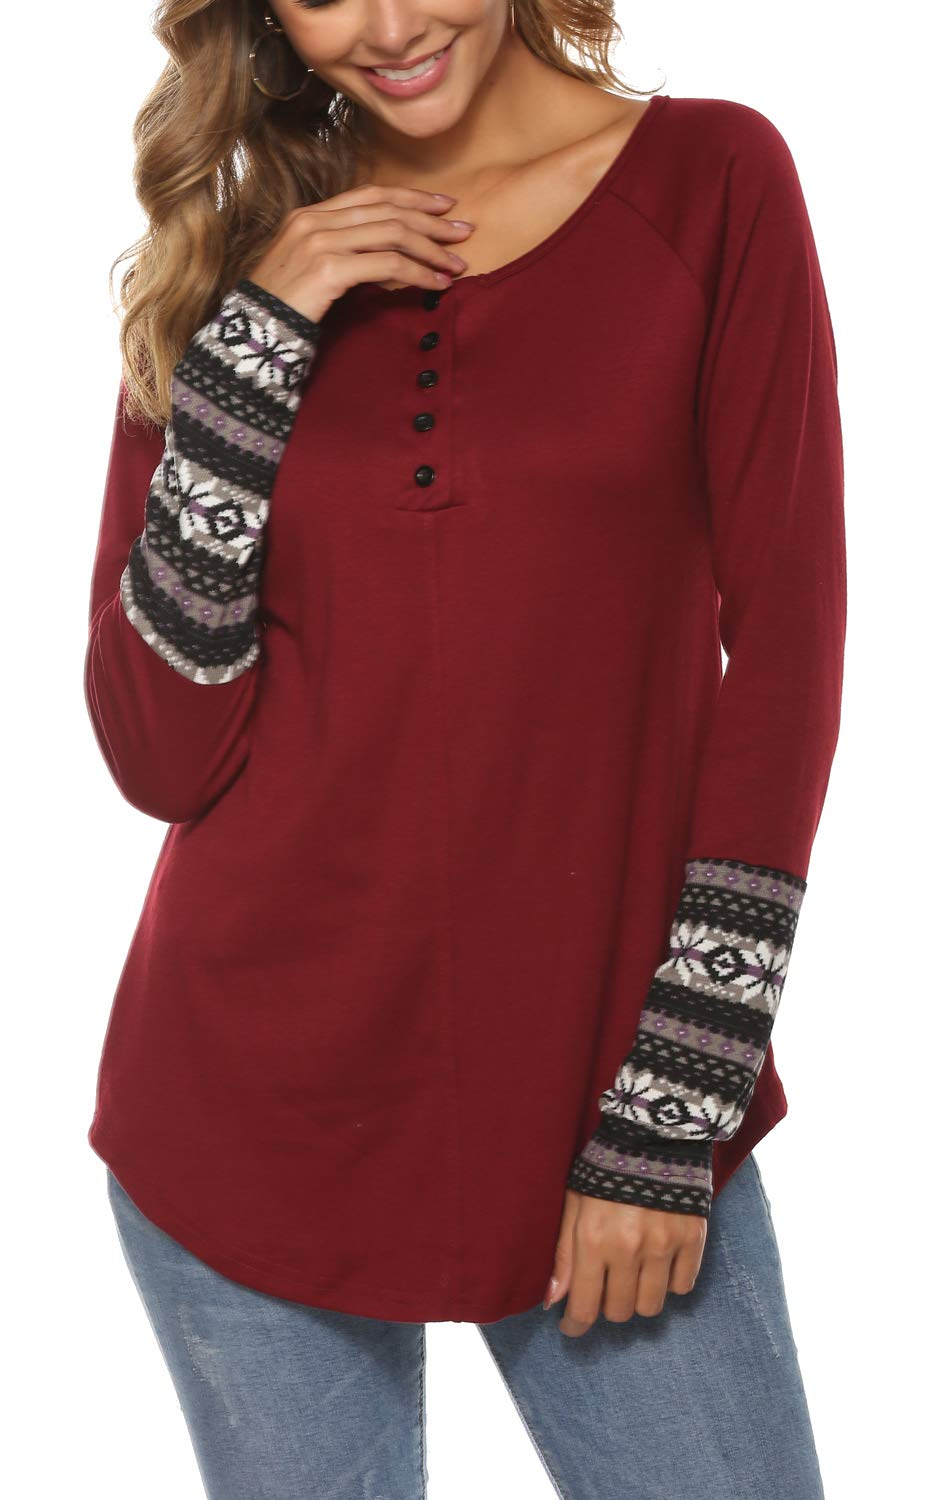 Newchoice Long Sleeve T Shirt Women,Button Up Geometric Patchwork Henley Tunic Tops (L,Wine Red)